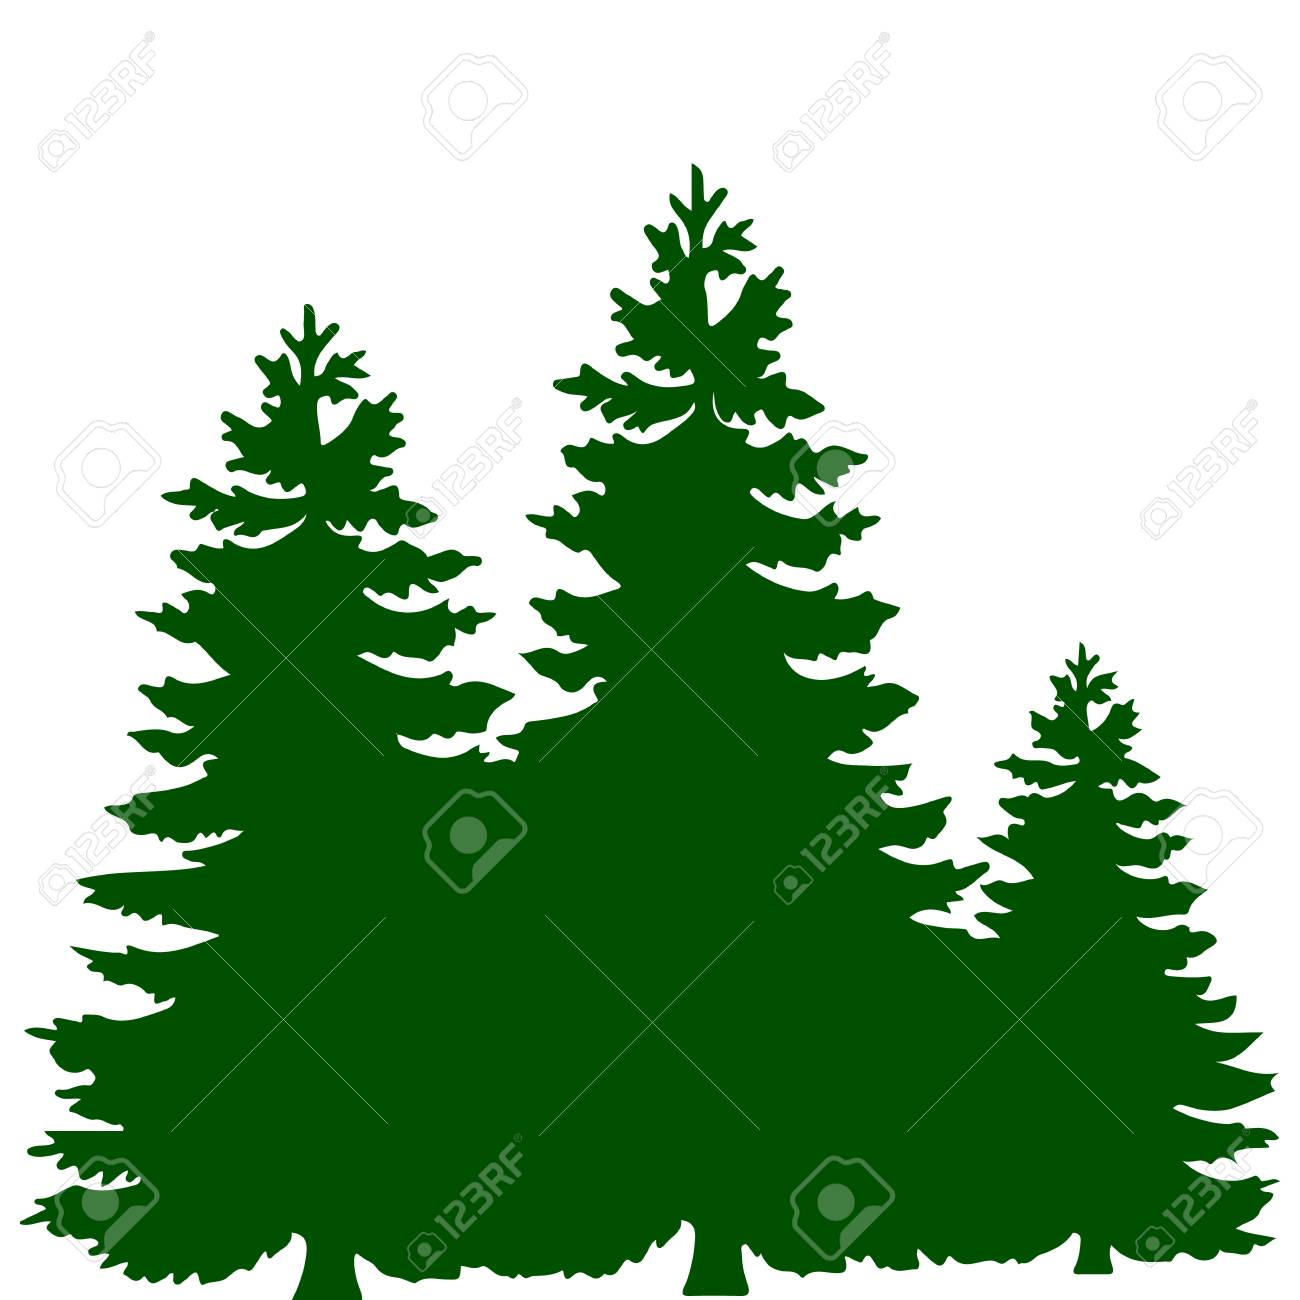 Christmas Trees Silhouette.Silhouette Of Three Green Christmas Trees On White Background